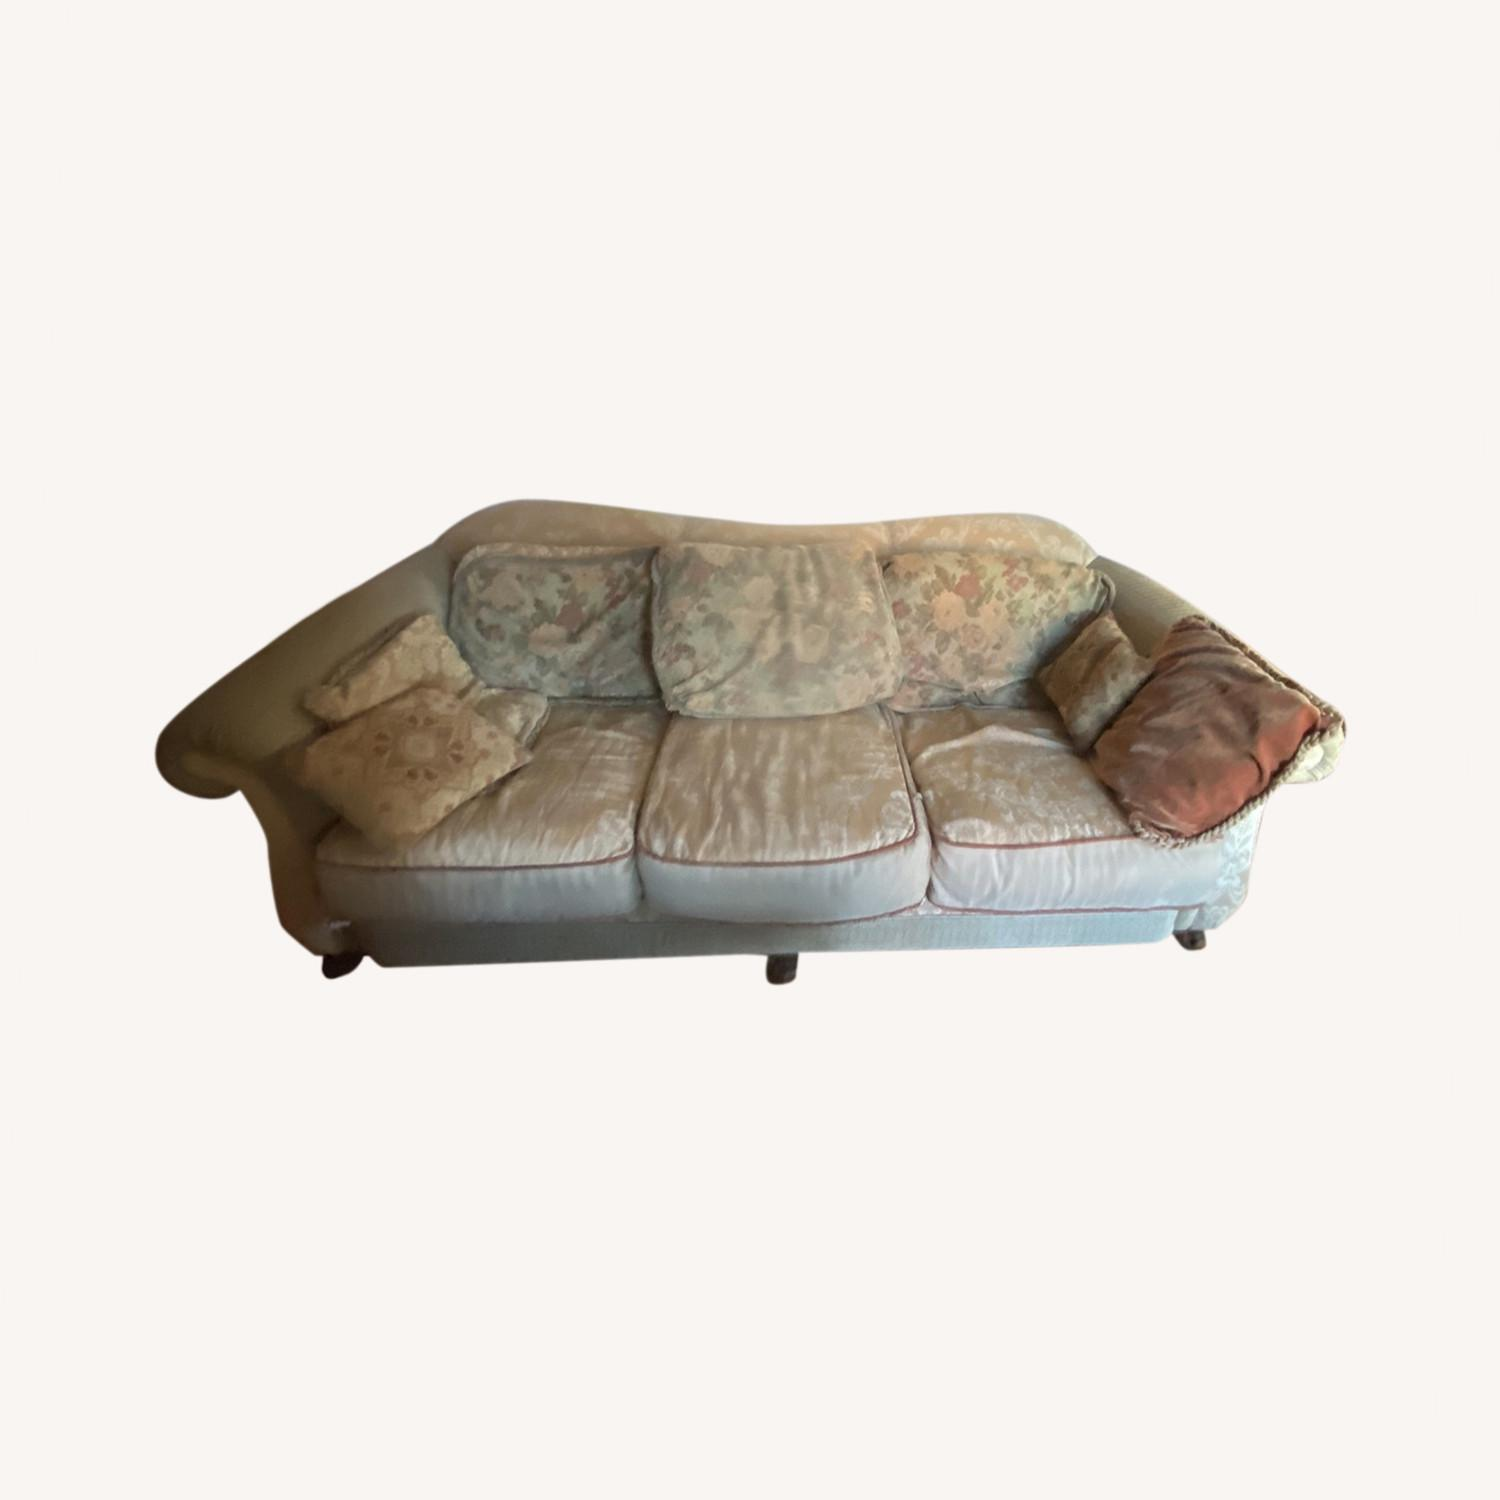 Domain Ornate Super Comfortable Couch Art Deco in Style - image-0